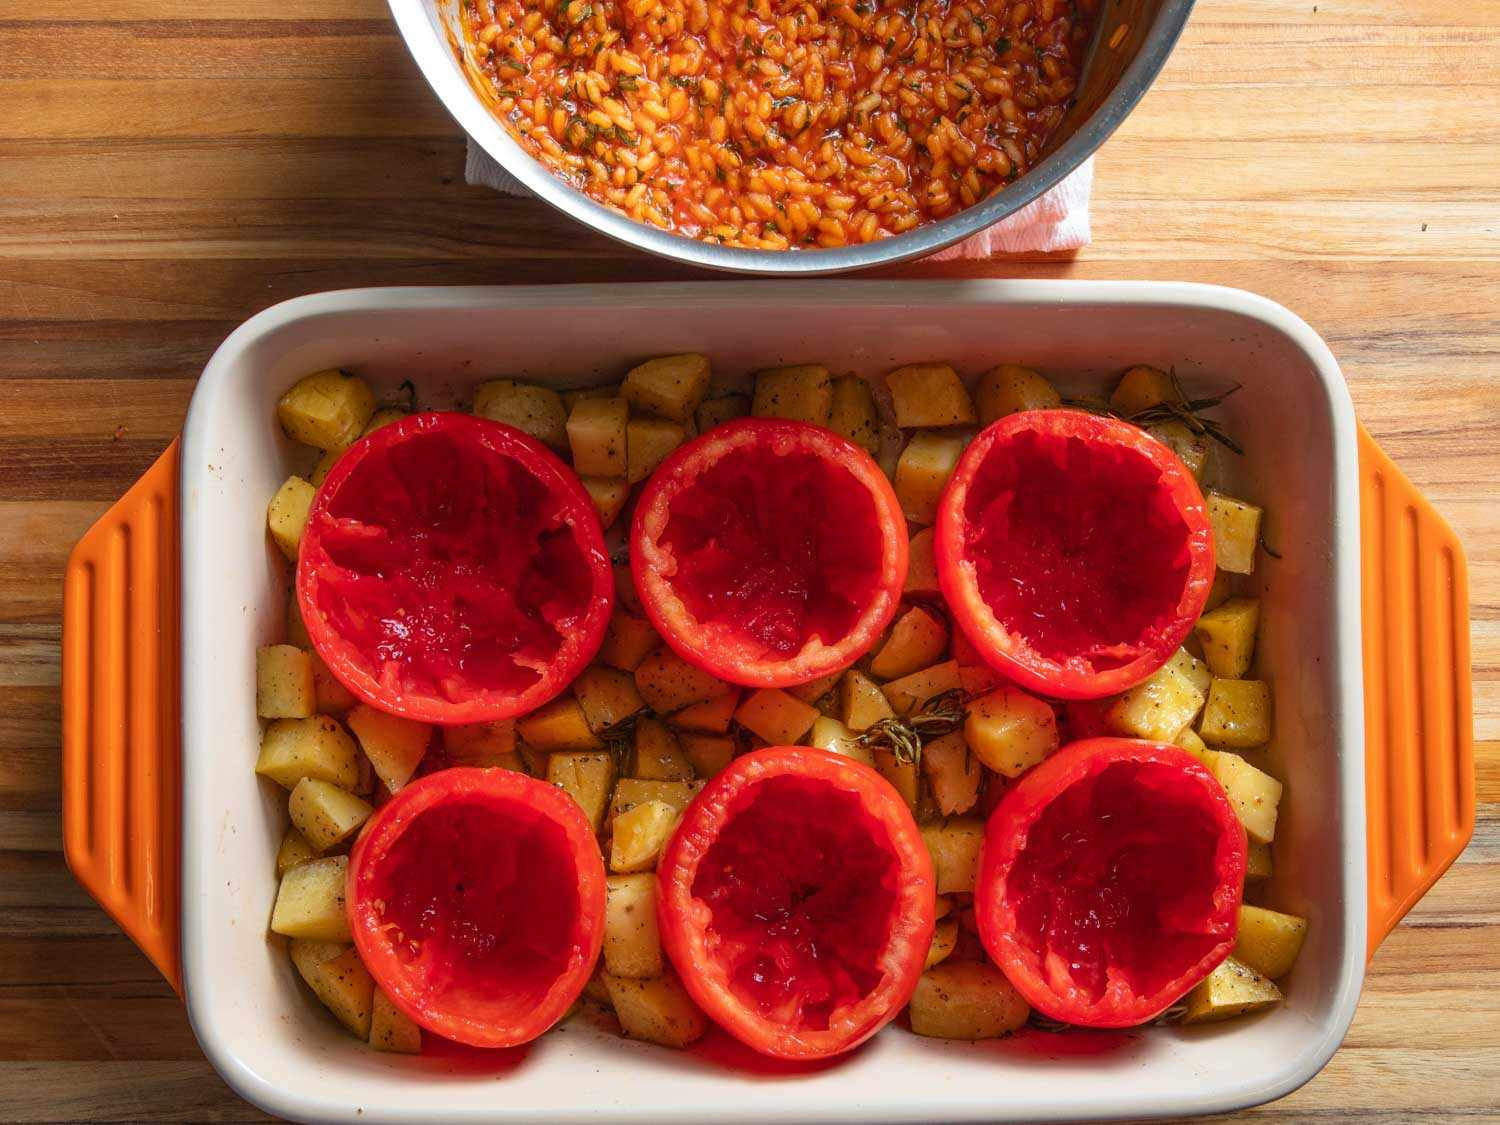 Overhead of hollowed-out tomatoes nestled in a baking dish with potatoes.